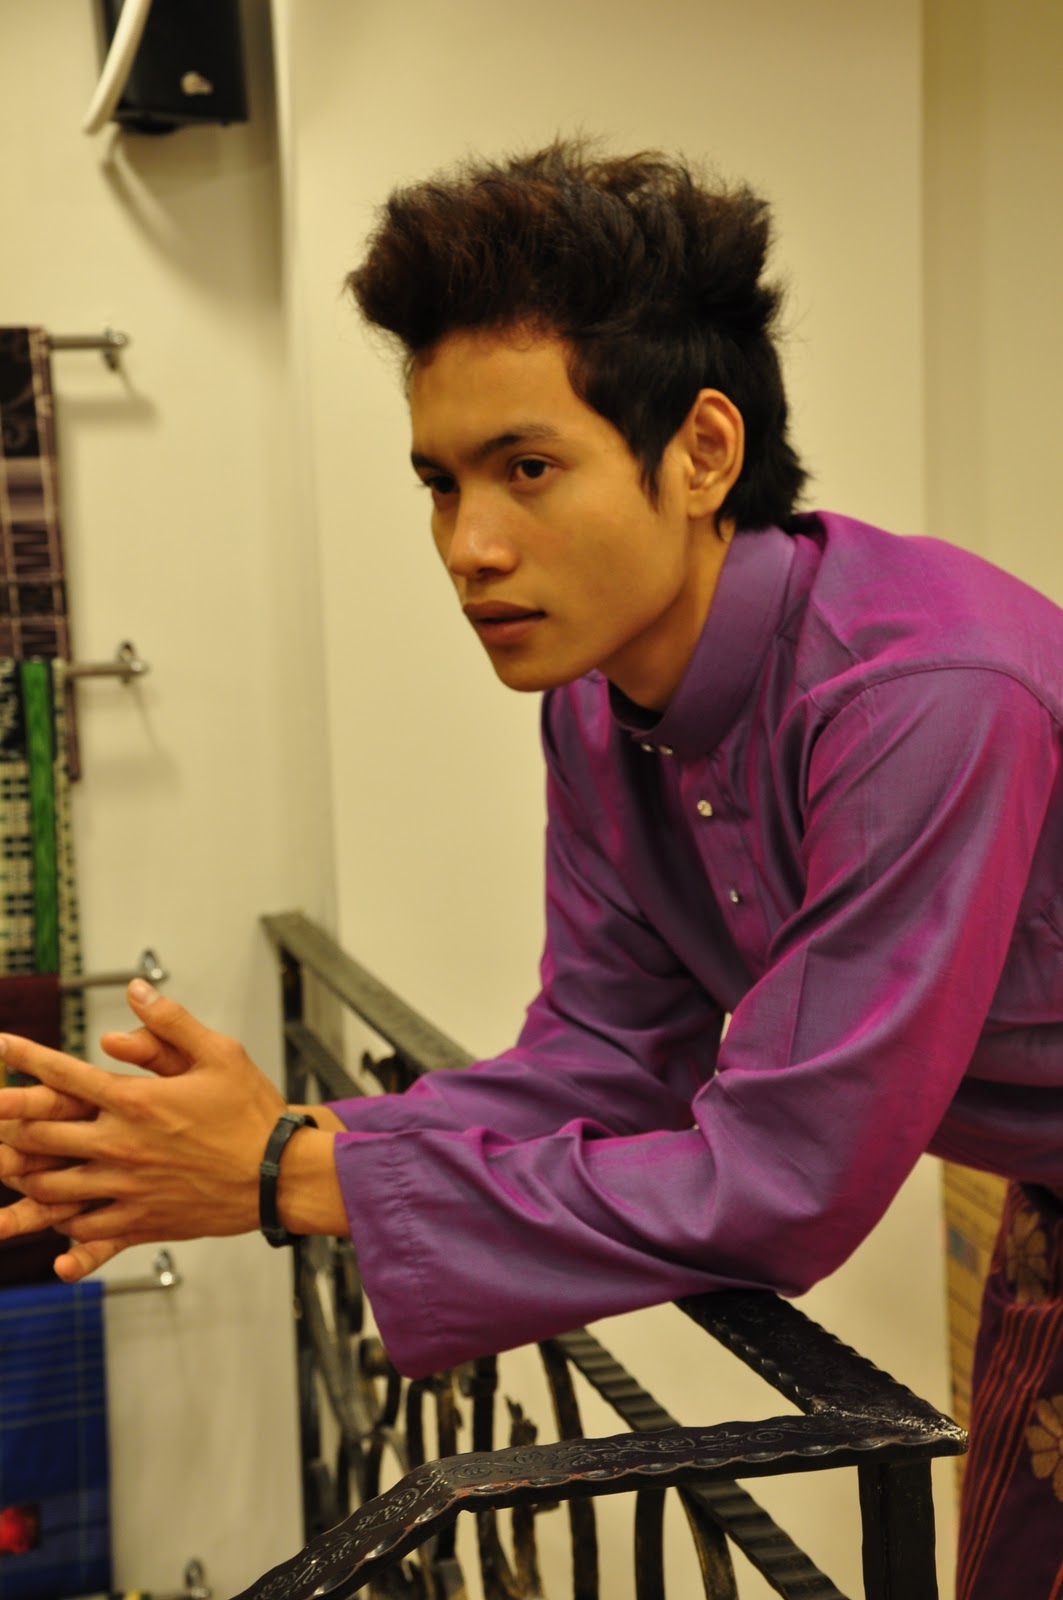 Model Using Thai Silk Baju Melayu Cekak Musang Royal Purple